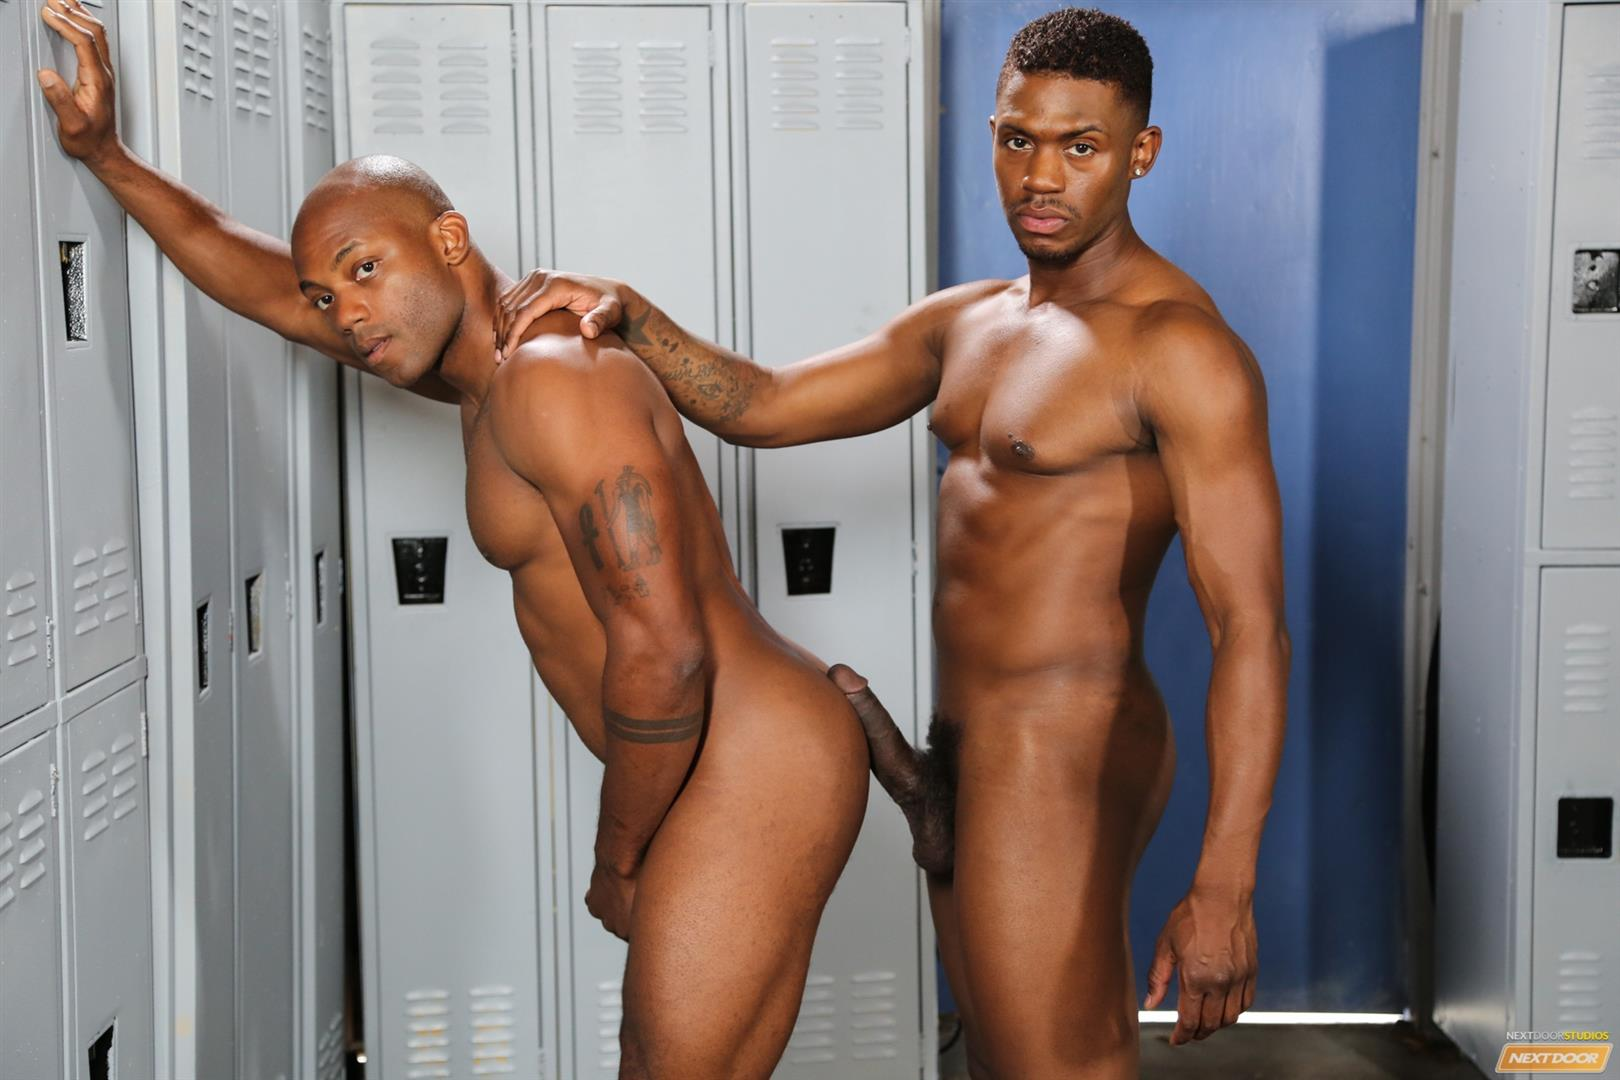 Next-Door-Ebony-Krave-Moore-and-Osiris-Blade-Big-Black-Cocks-Dicks-Fucking-Amateur-Gay-Porn-13 Muscular Black Guys Take Turns Fucking Each Other In The Locker Room